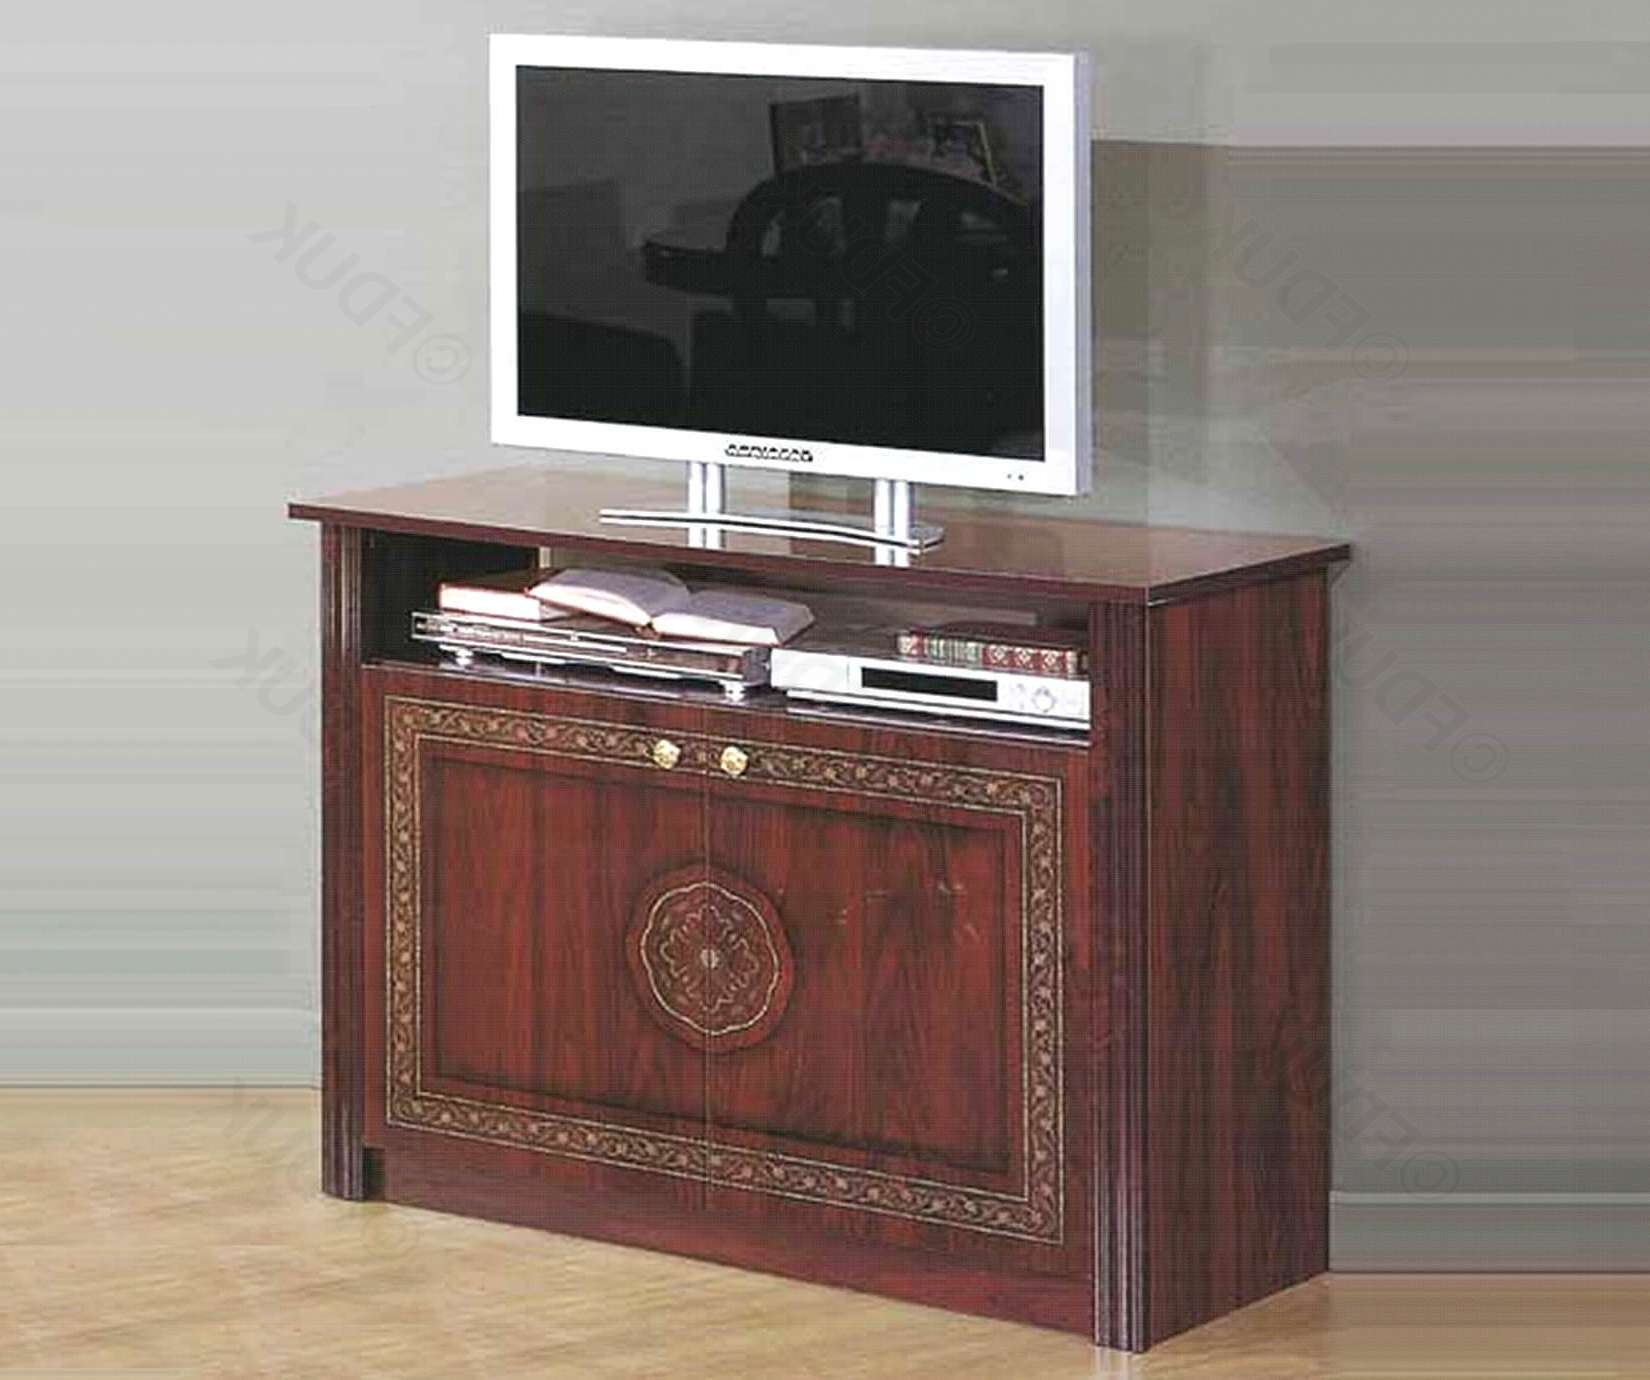 Mcs Pamela | Pamela Mahogany Tv Cabinet | Furnituredirectuk With Regard To Mahogany Tv Cabinets (View 15 of 20)